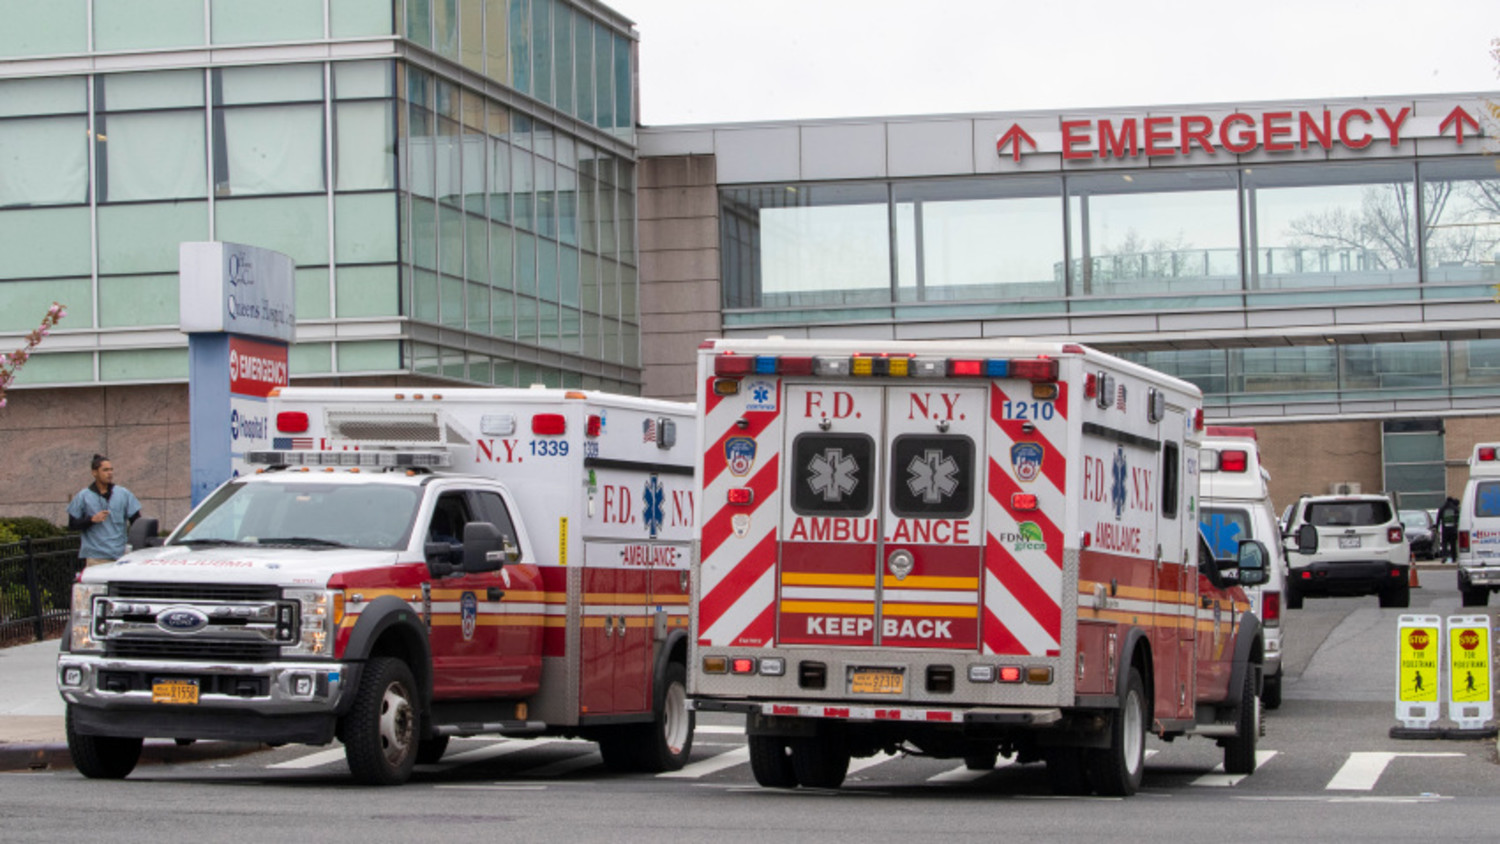 FDNY ambulances are seen entering and leaving the emergency room at Queens Hospital Center, Monday, April 20, 2020, in the Jamaica neighborhood of the Queens borough of New York. The new coronavirus causes mild or moderate symptoms for most people, but for some, especially older adults and people with existing health problems, it can cause more severe illness or death. (AP Photo/Mary Altaffer)